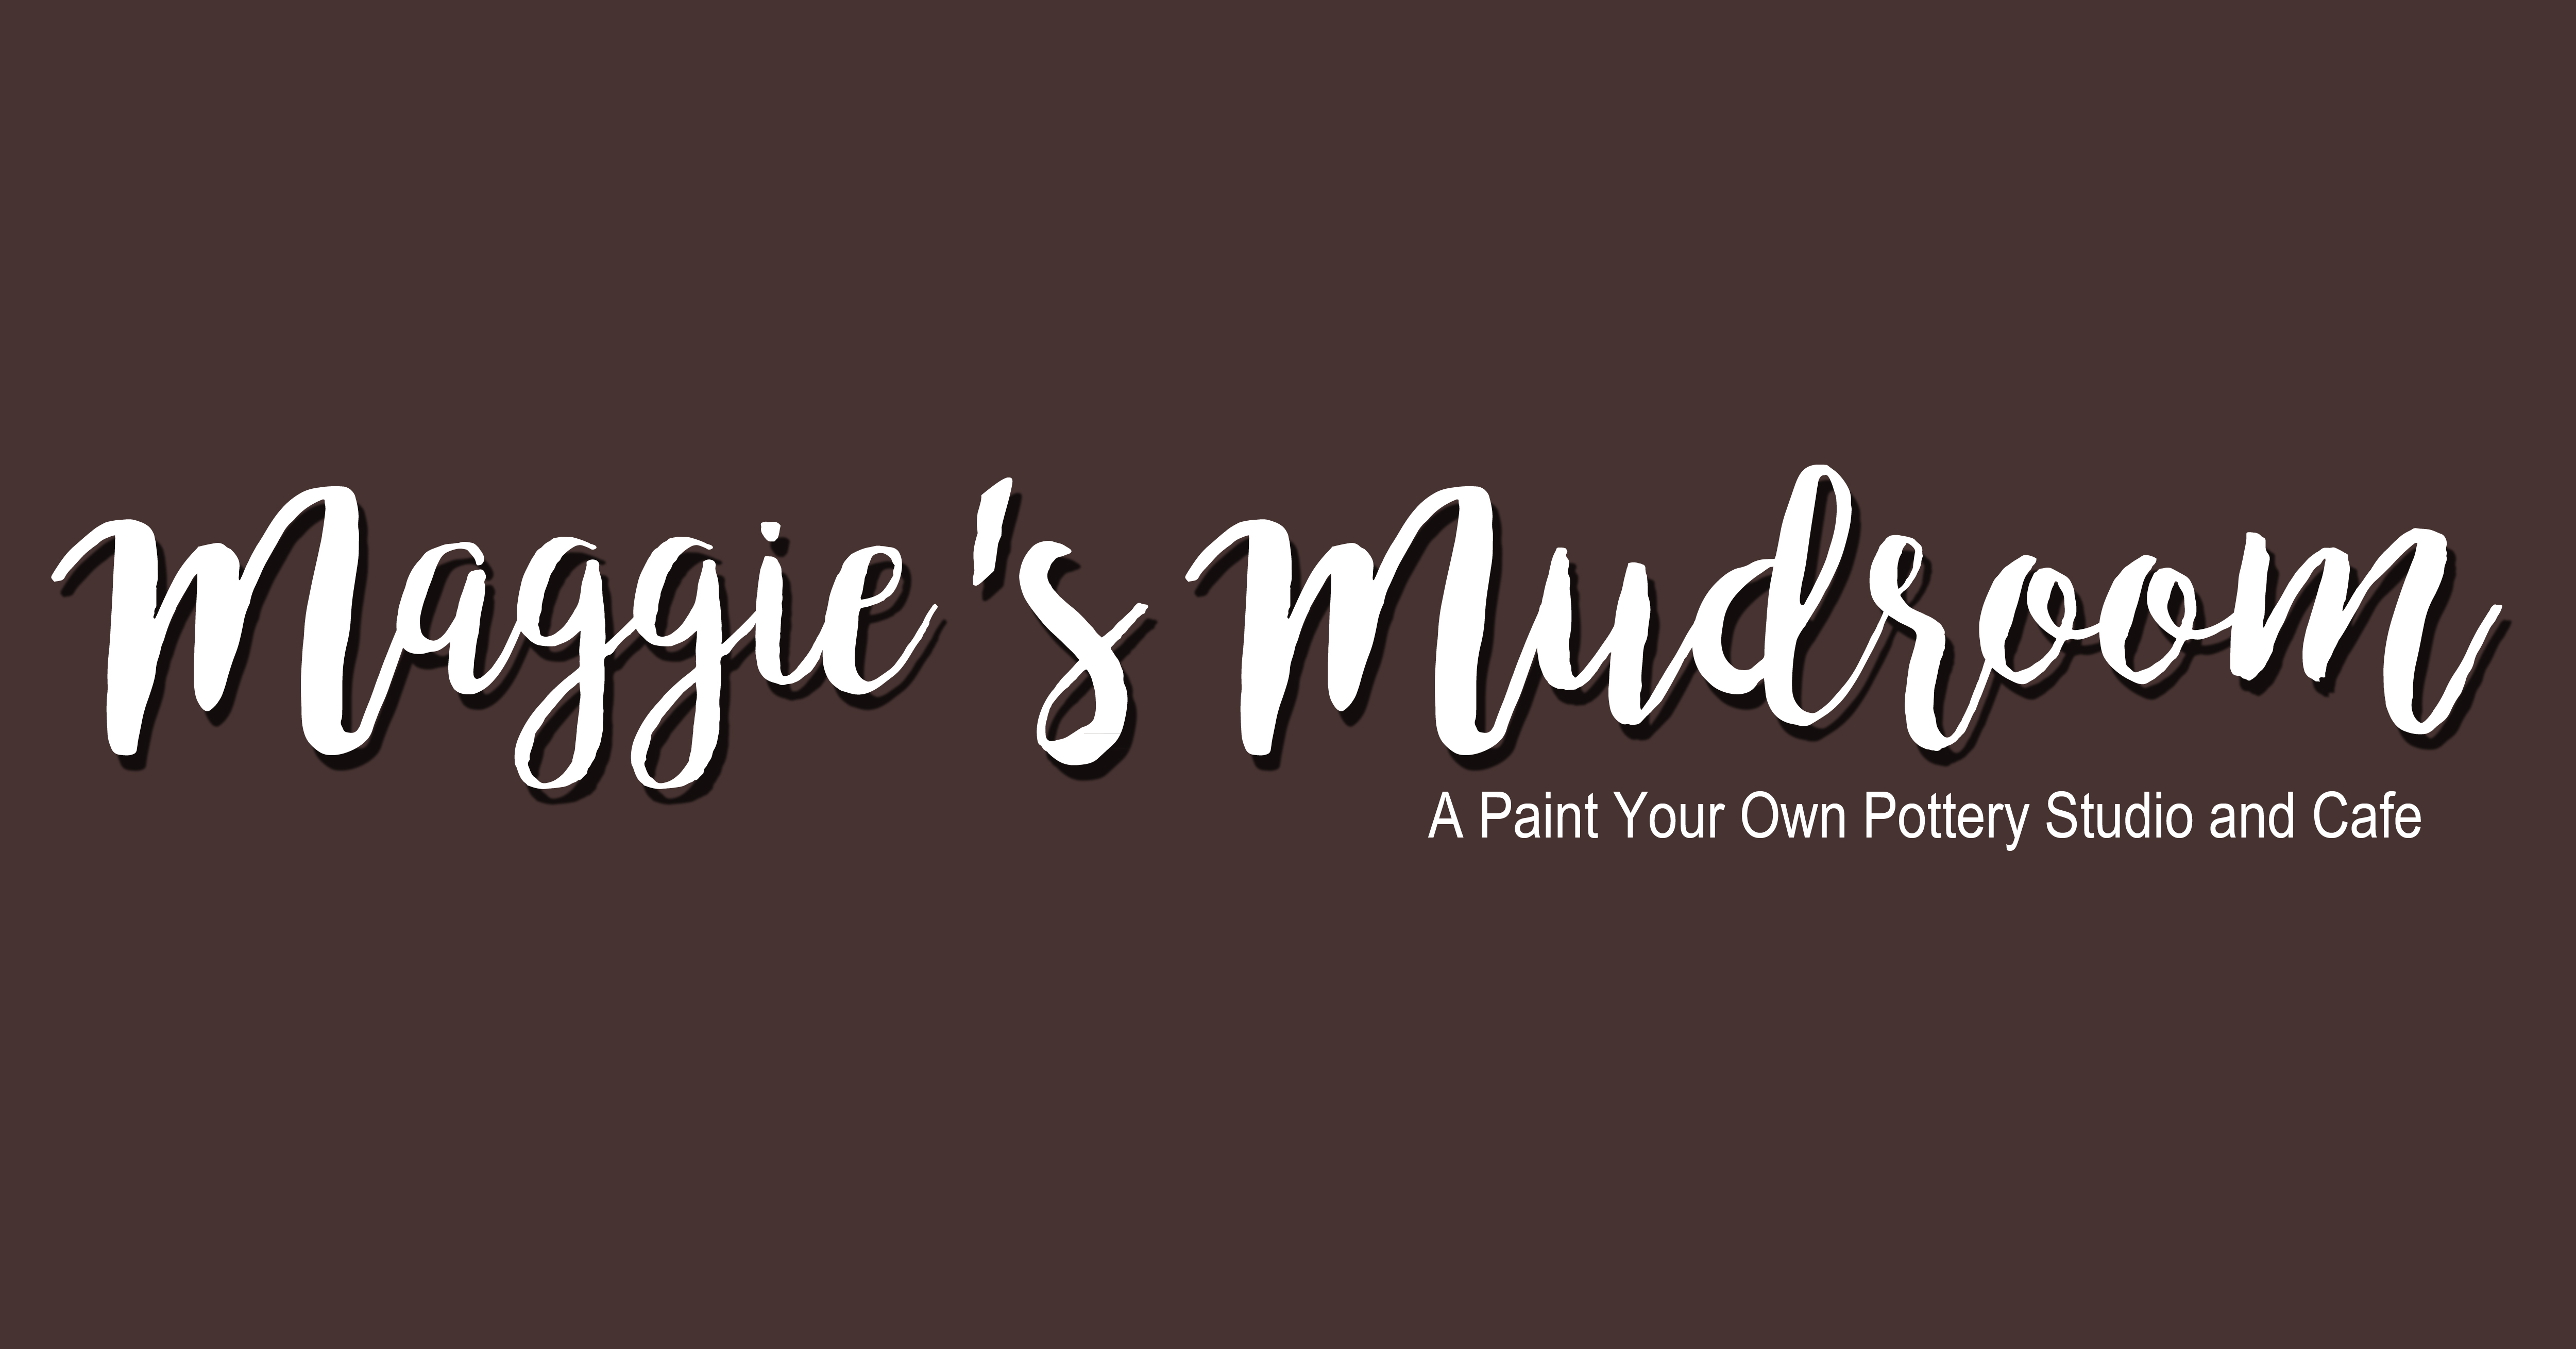 Maggies Mudroom logo